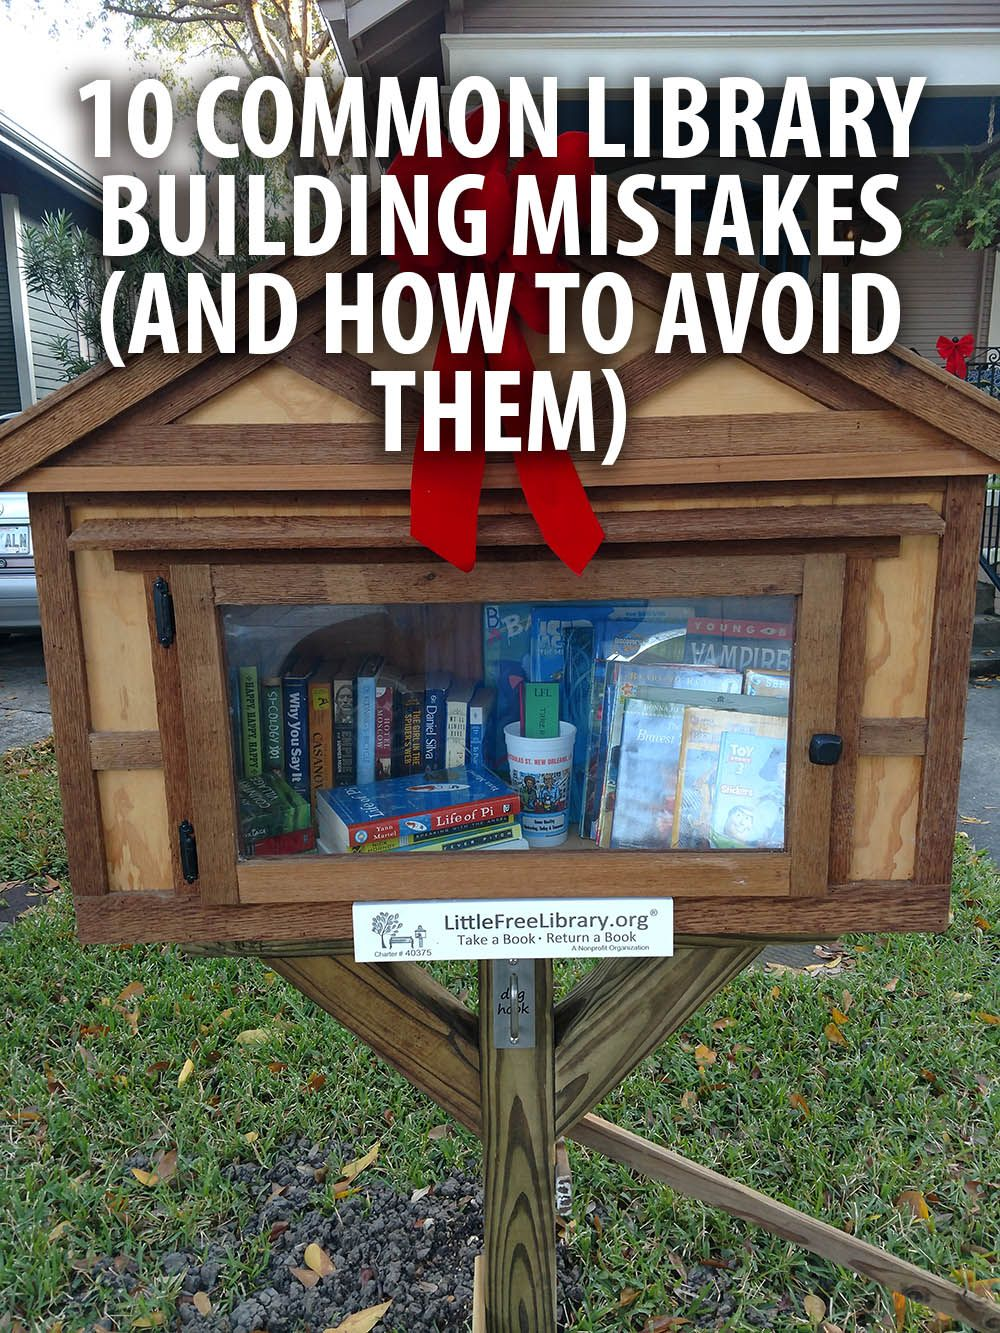 We've built thousands of Little Libraries over the years